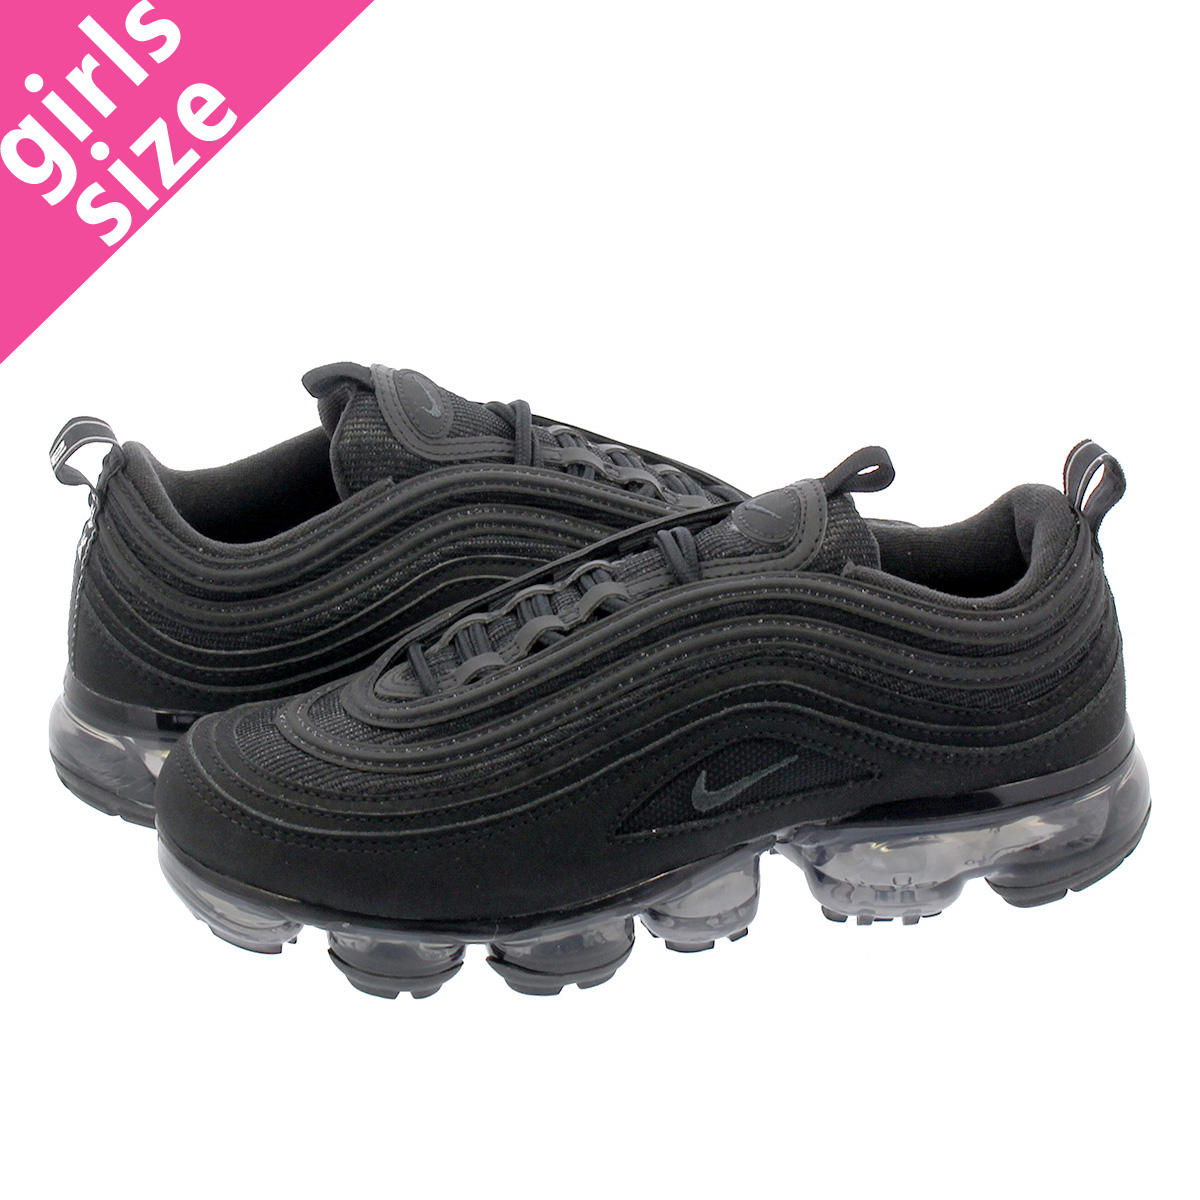 finest selection cfda0 9fcfa NIKE AIR VAPORMAX 97 GS Nike air vapor max 97 GS BLACK/BLACK aq2657-001